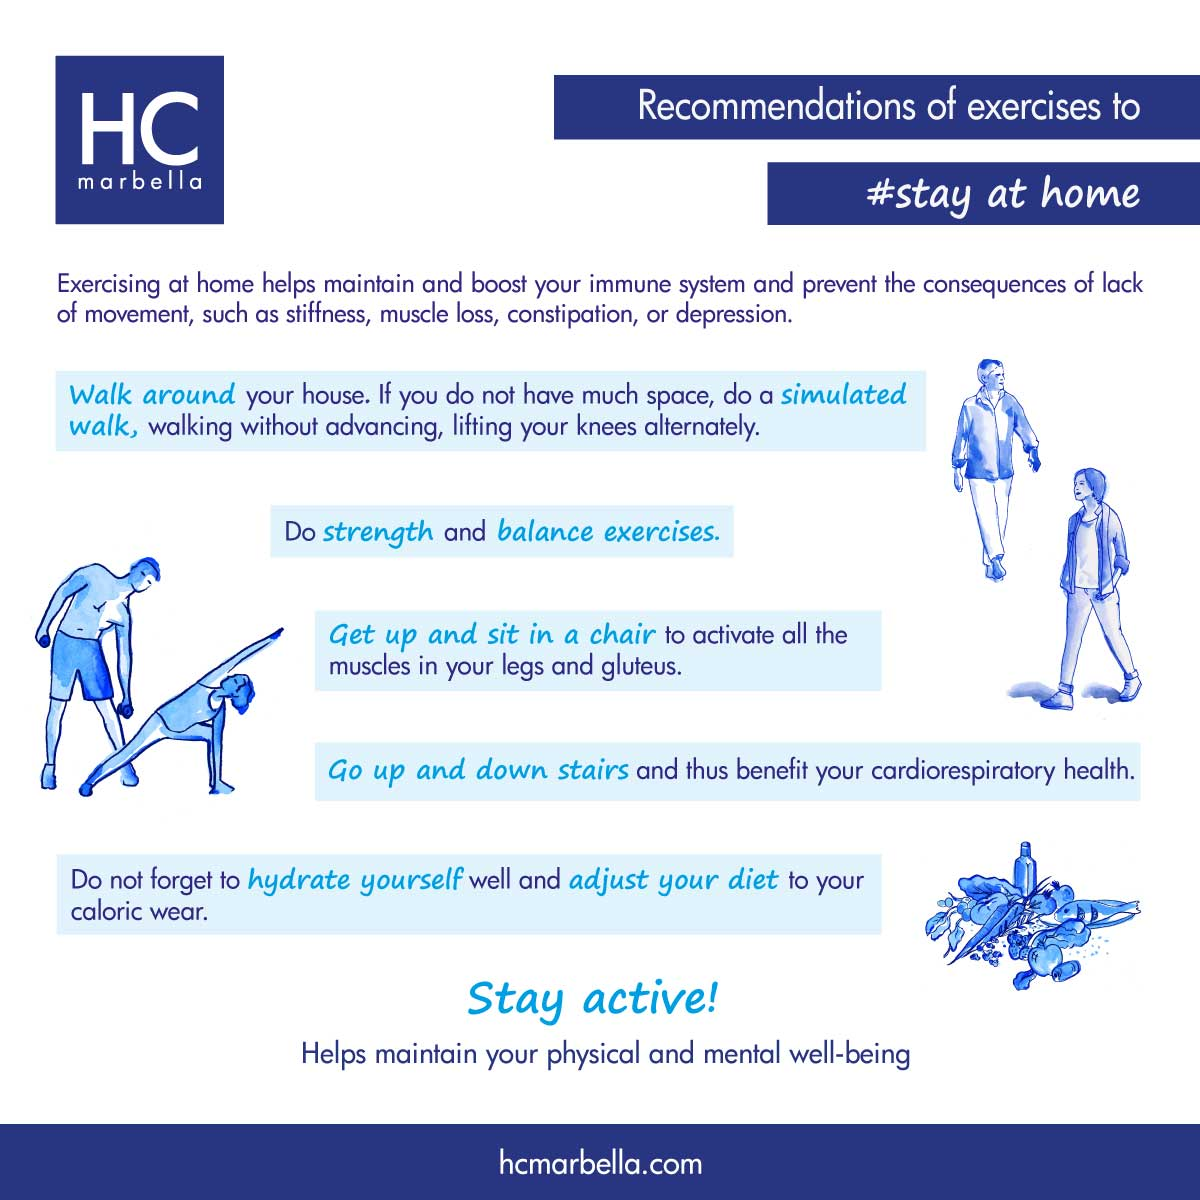 Recommendations of exercises to stay at home